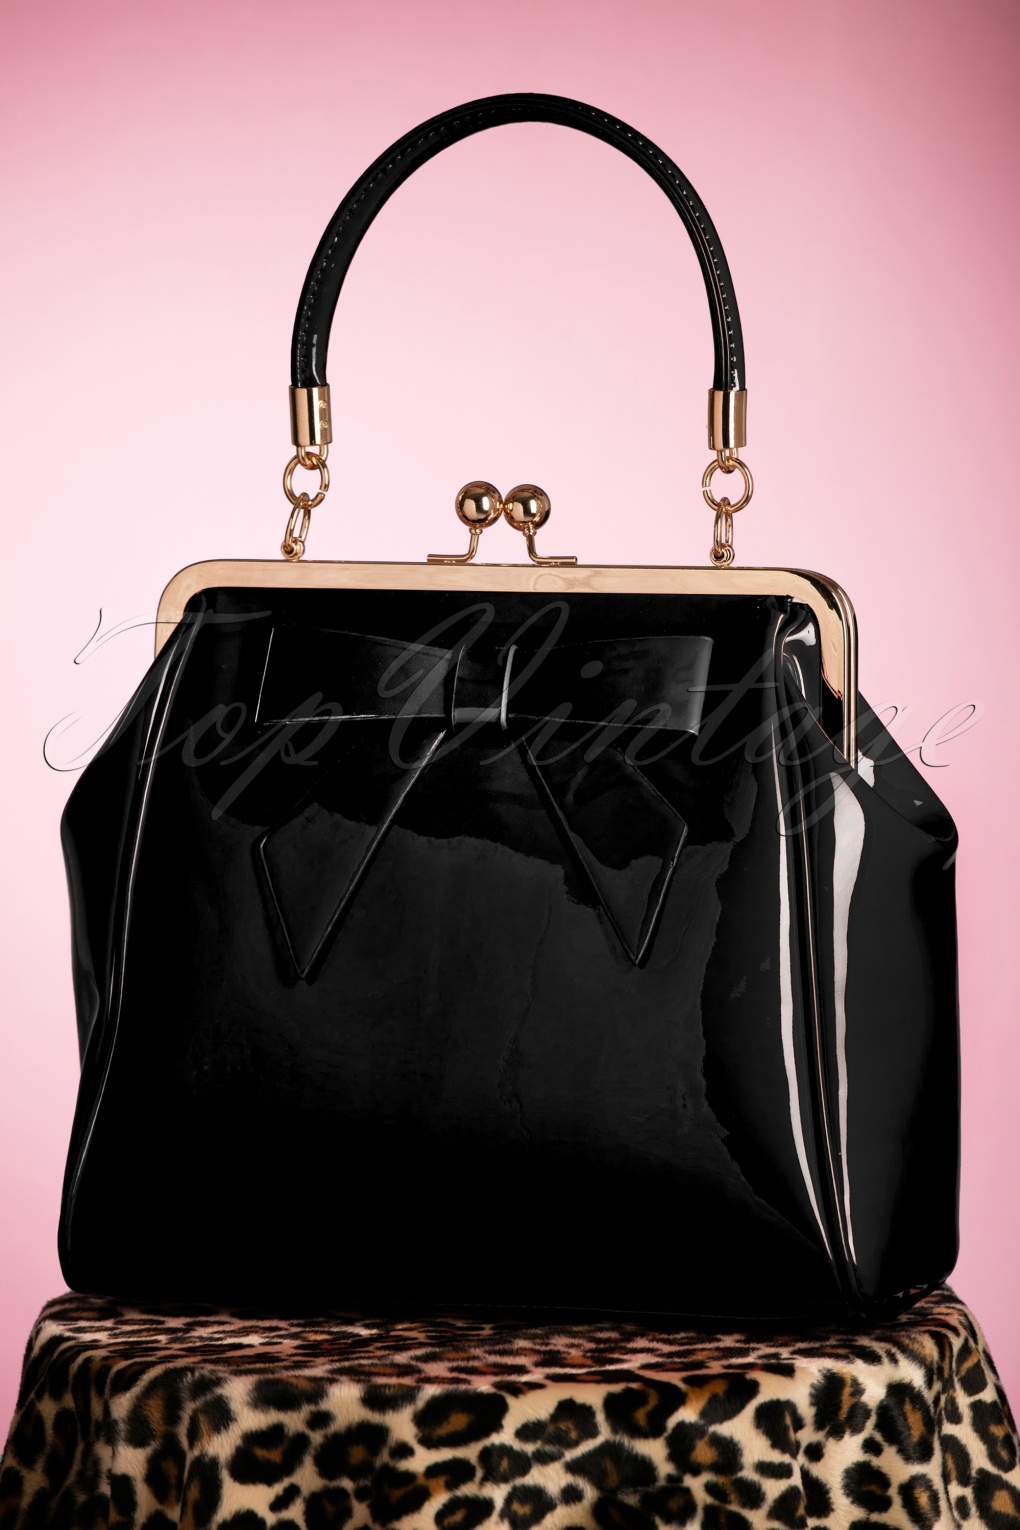 Vintage & Retro Handbags, Purses, Wallets, Bags 50s American Vintage Patent Bag in Black �35.28 AT vintagedancer.com